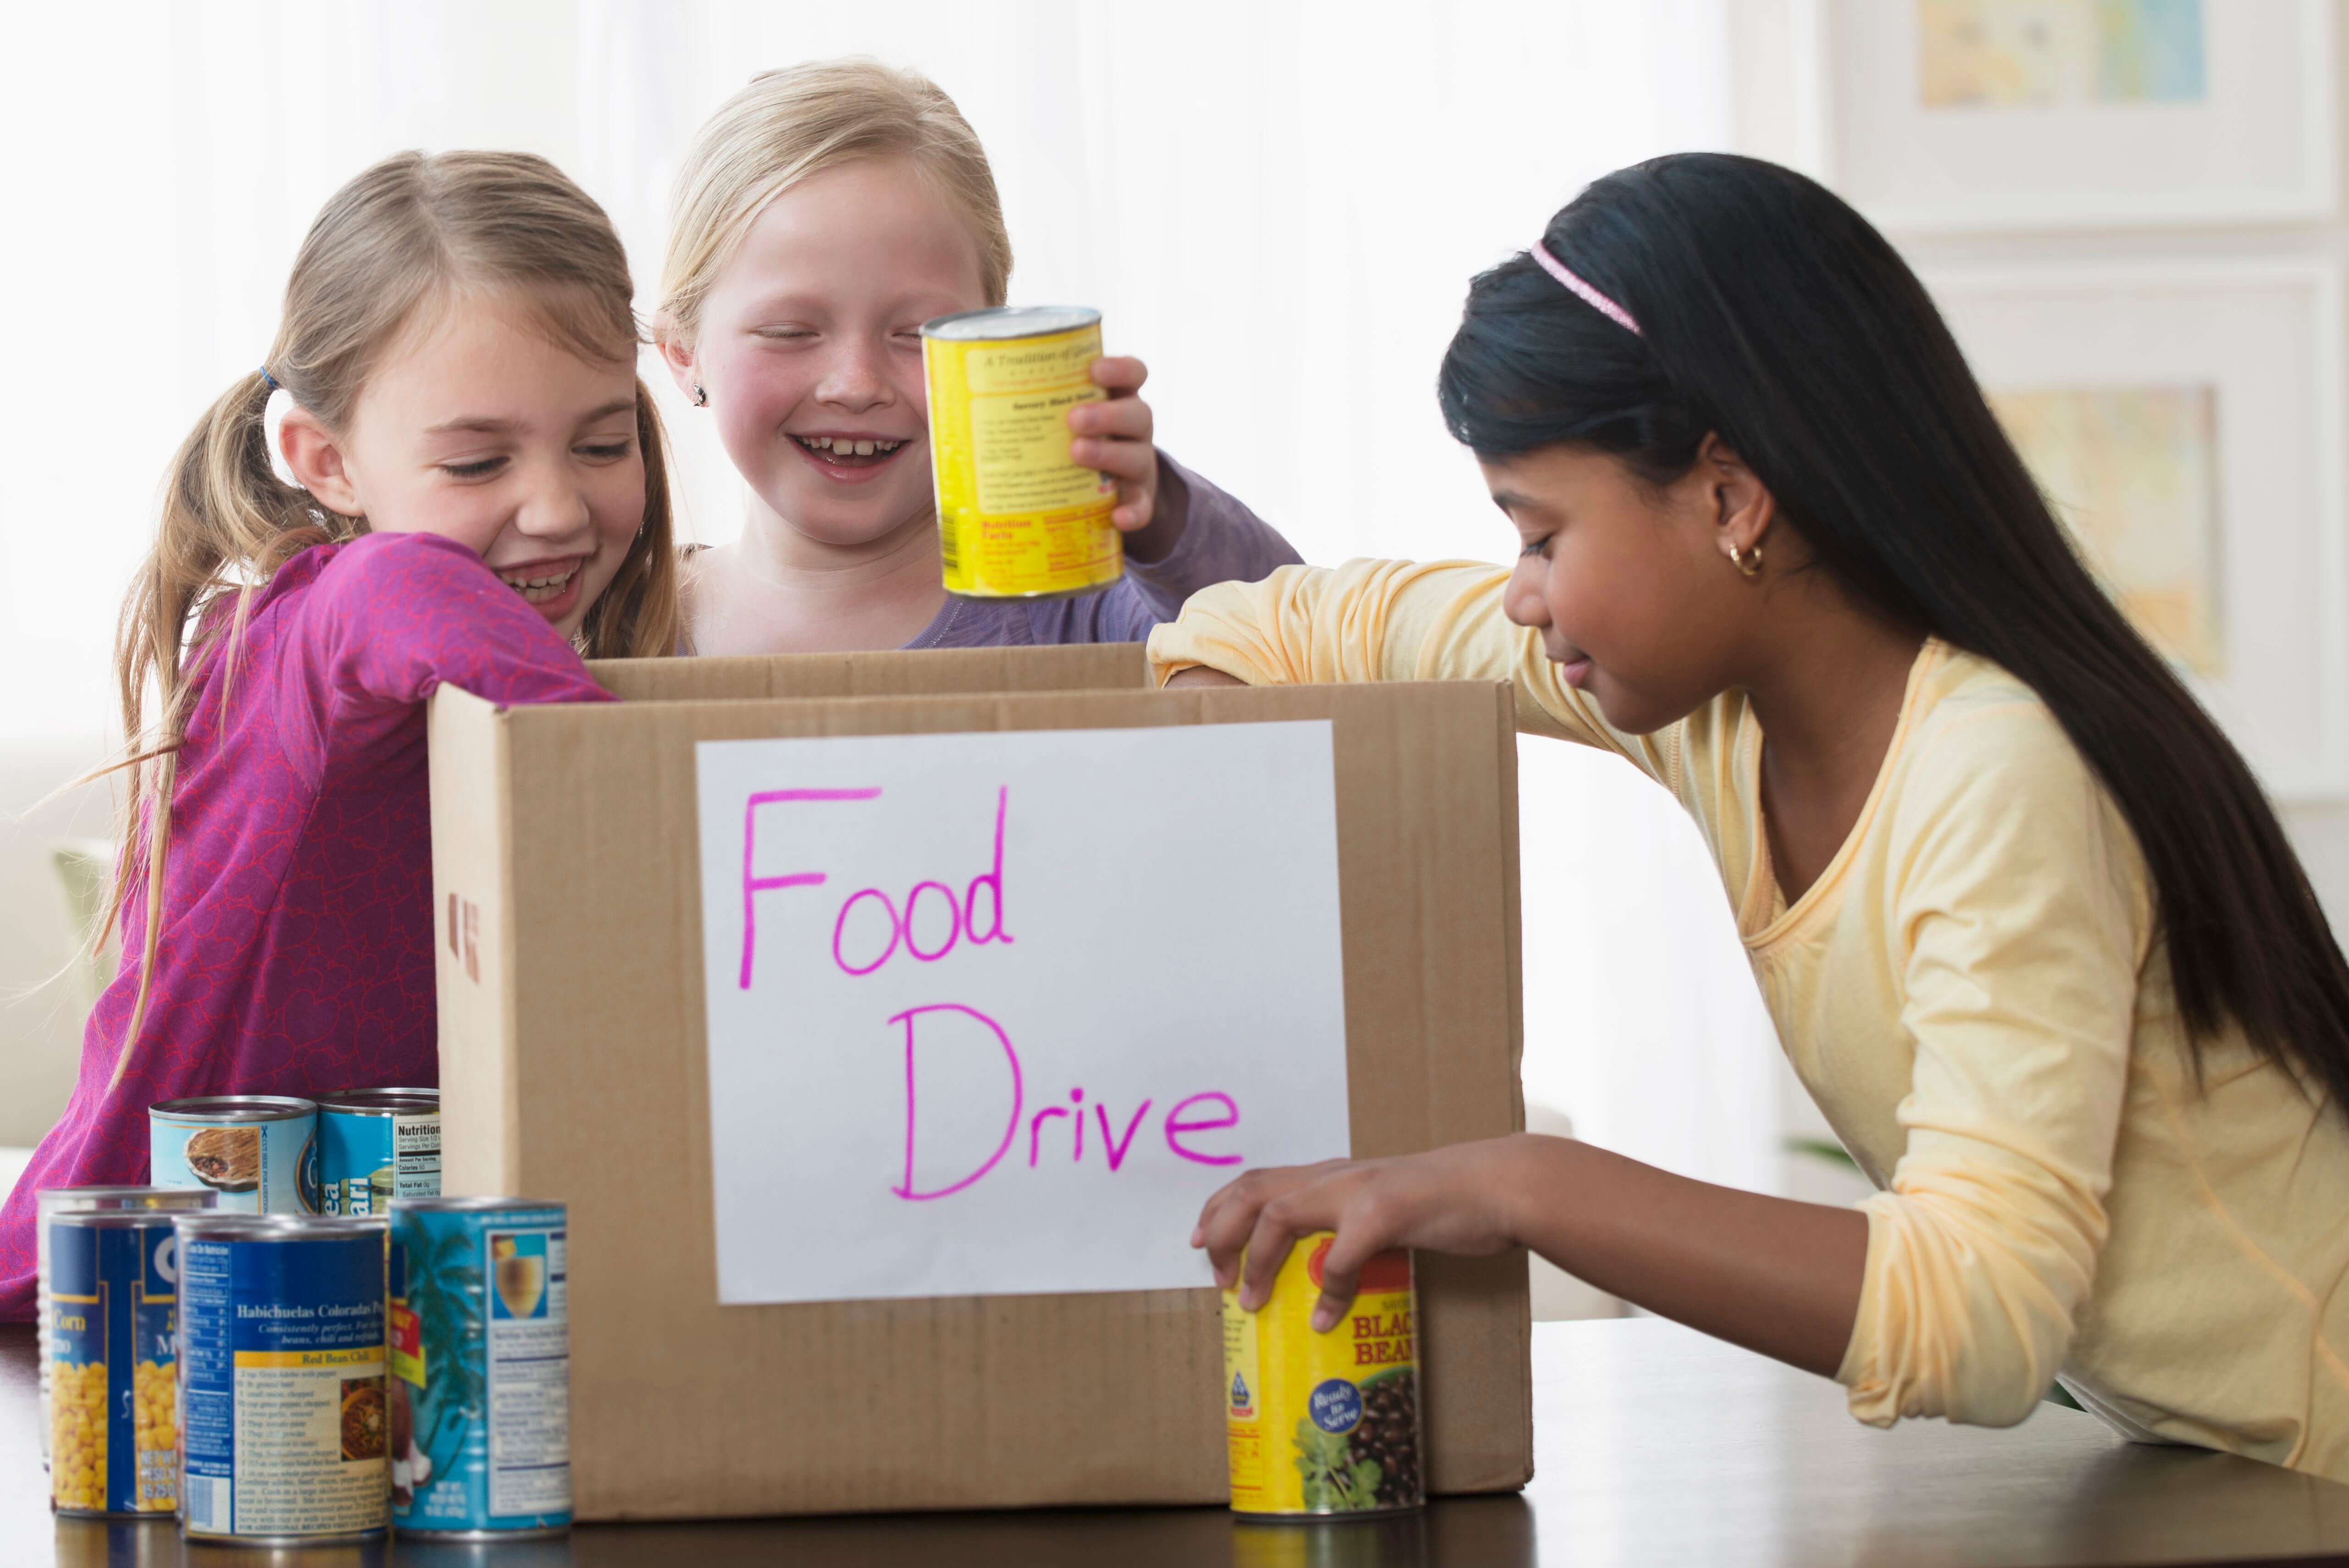 Girls placing cans of food in a donation box